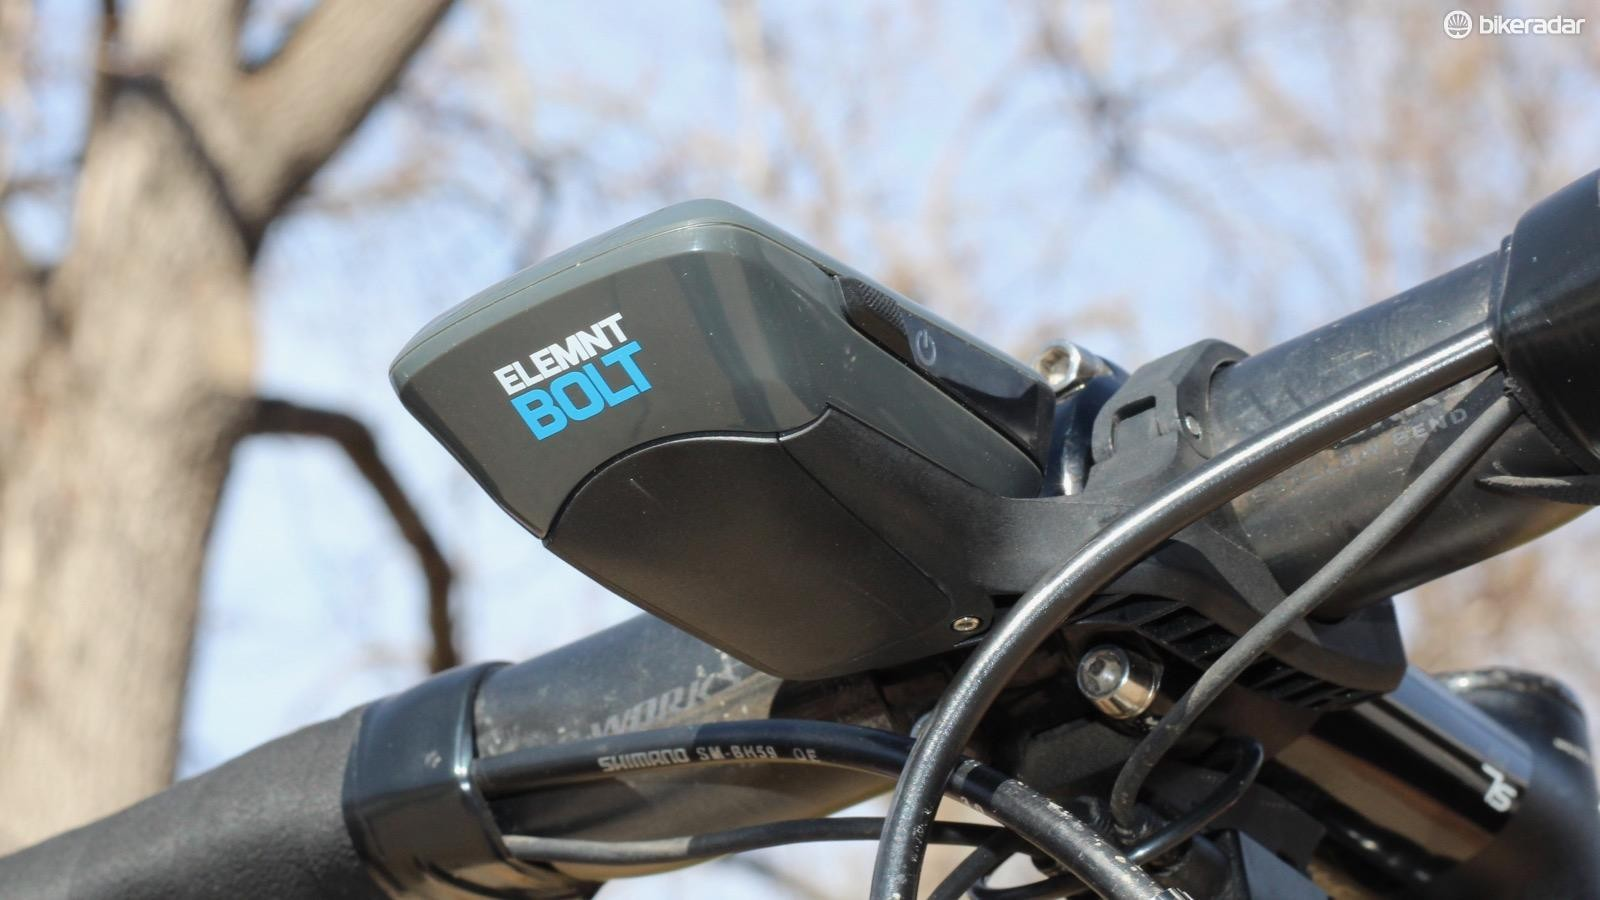 The Bolt is the first computer to be designed in tandem with its mount with aerodynamics in mind